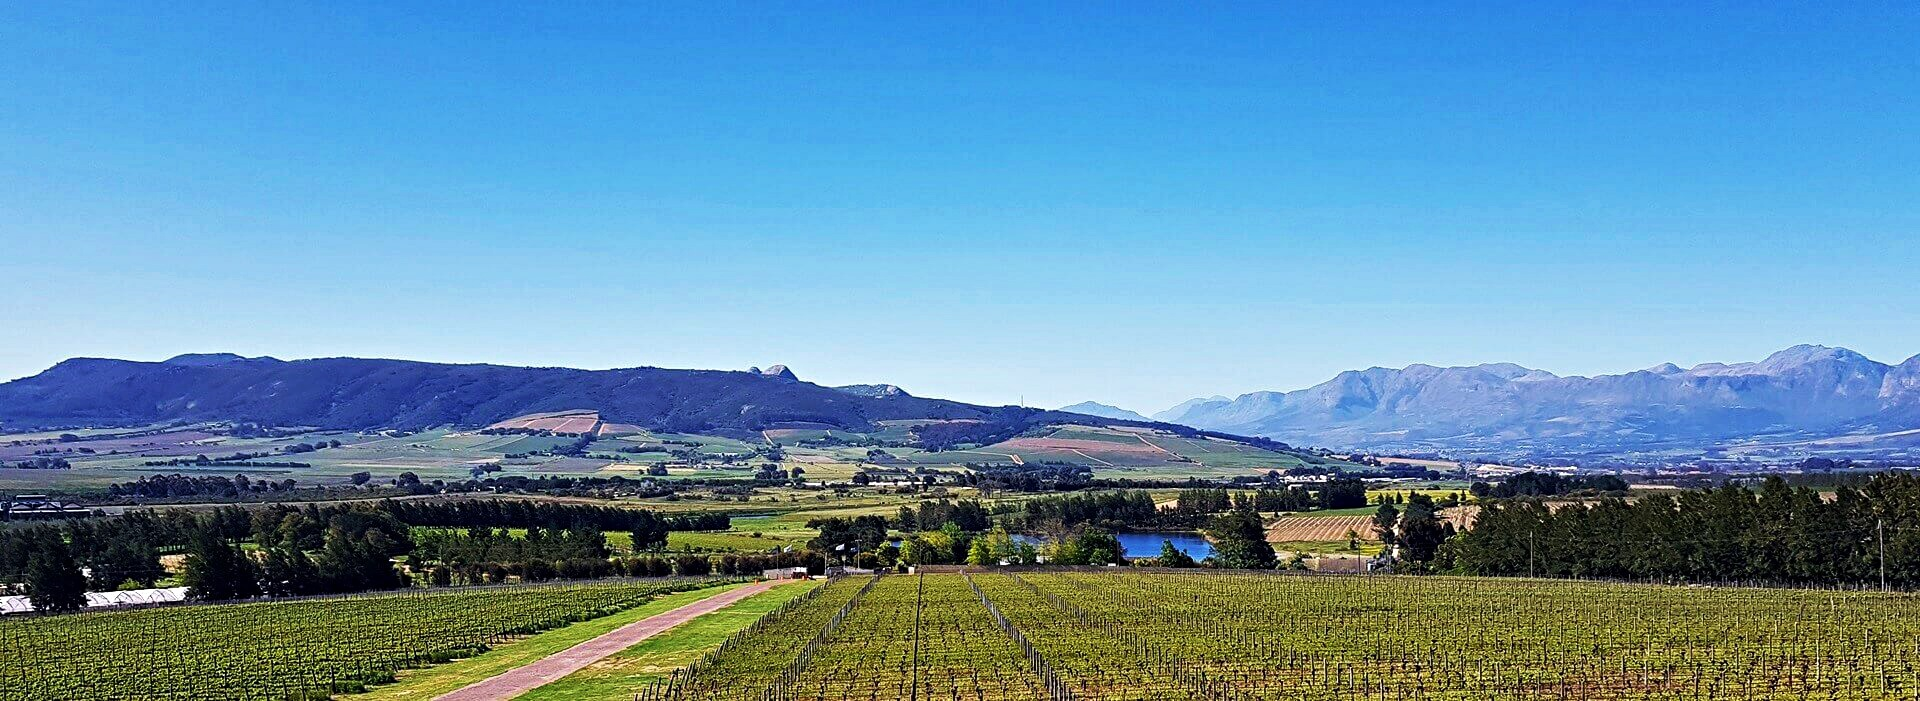 the-wine-specialist-2-and-3-day-wine-tour-15